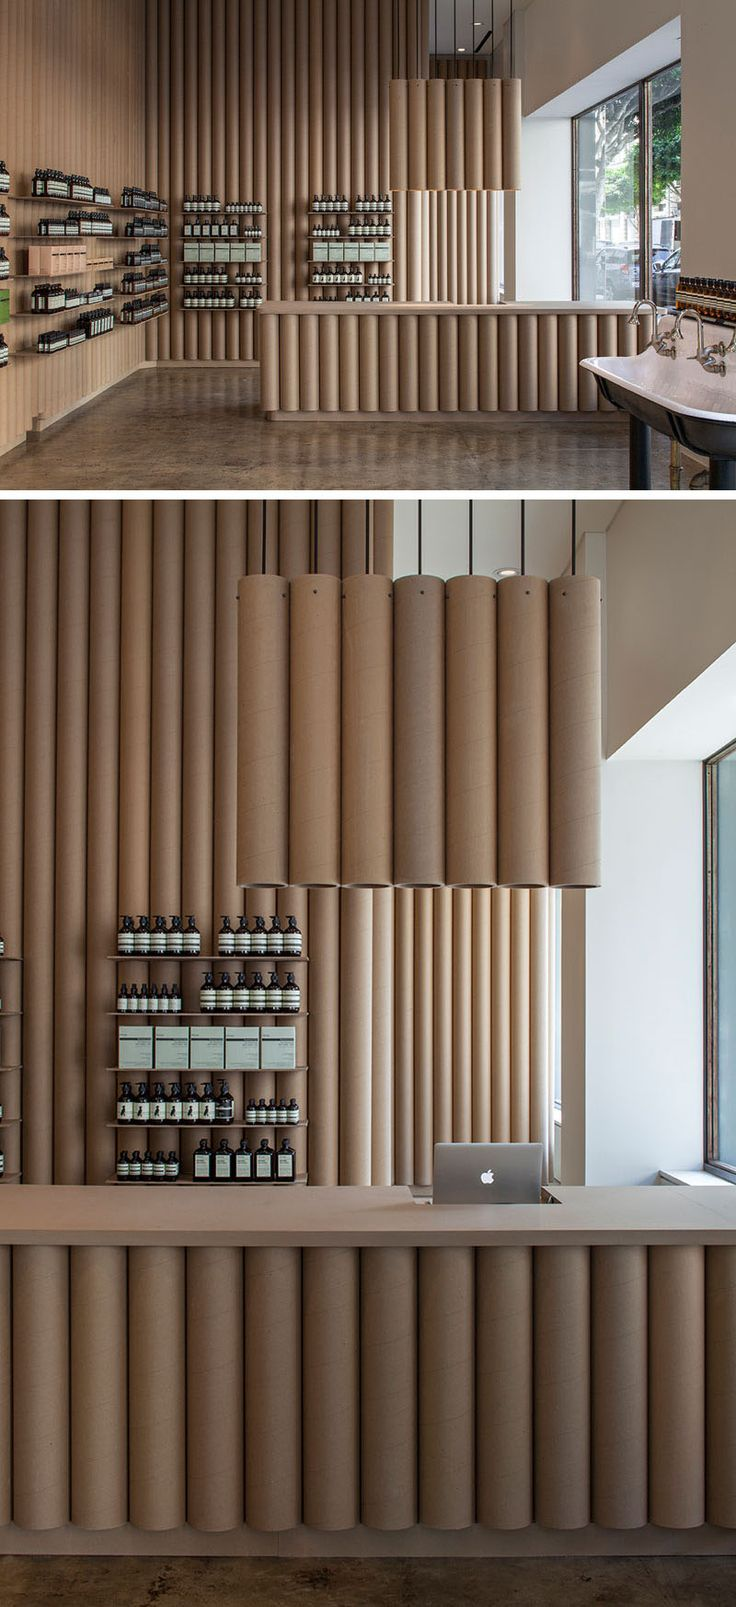 Store Design Ideas this Cardboard Tubes Have Been Used Throughout This Aesop Store In Downtown La